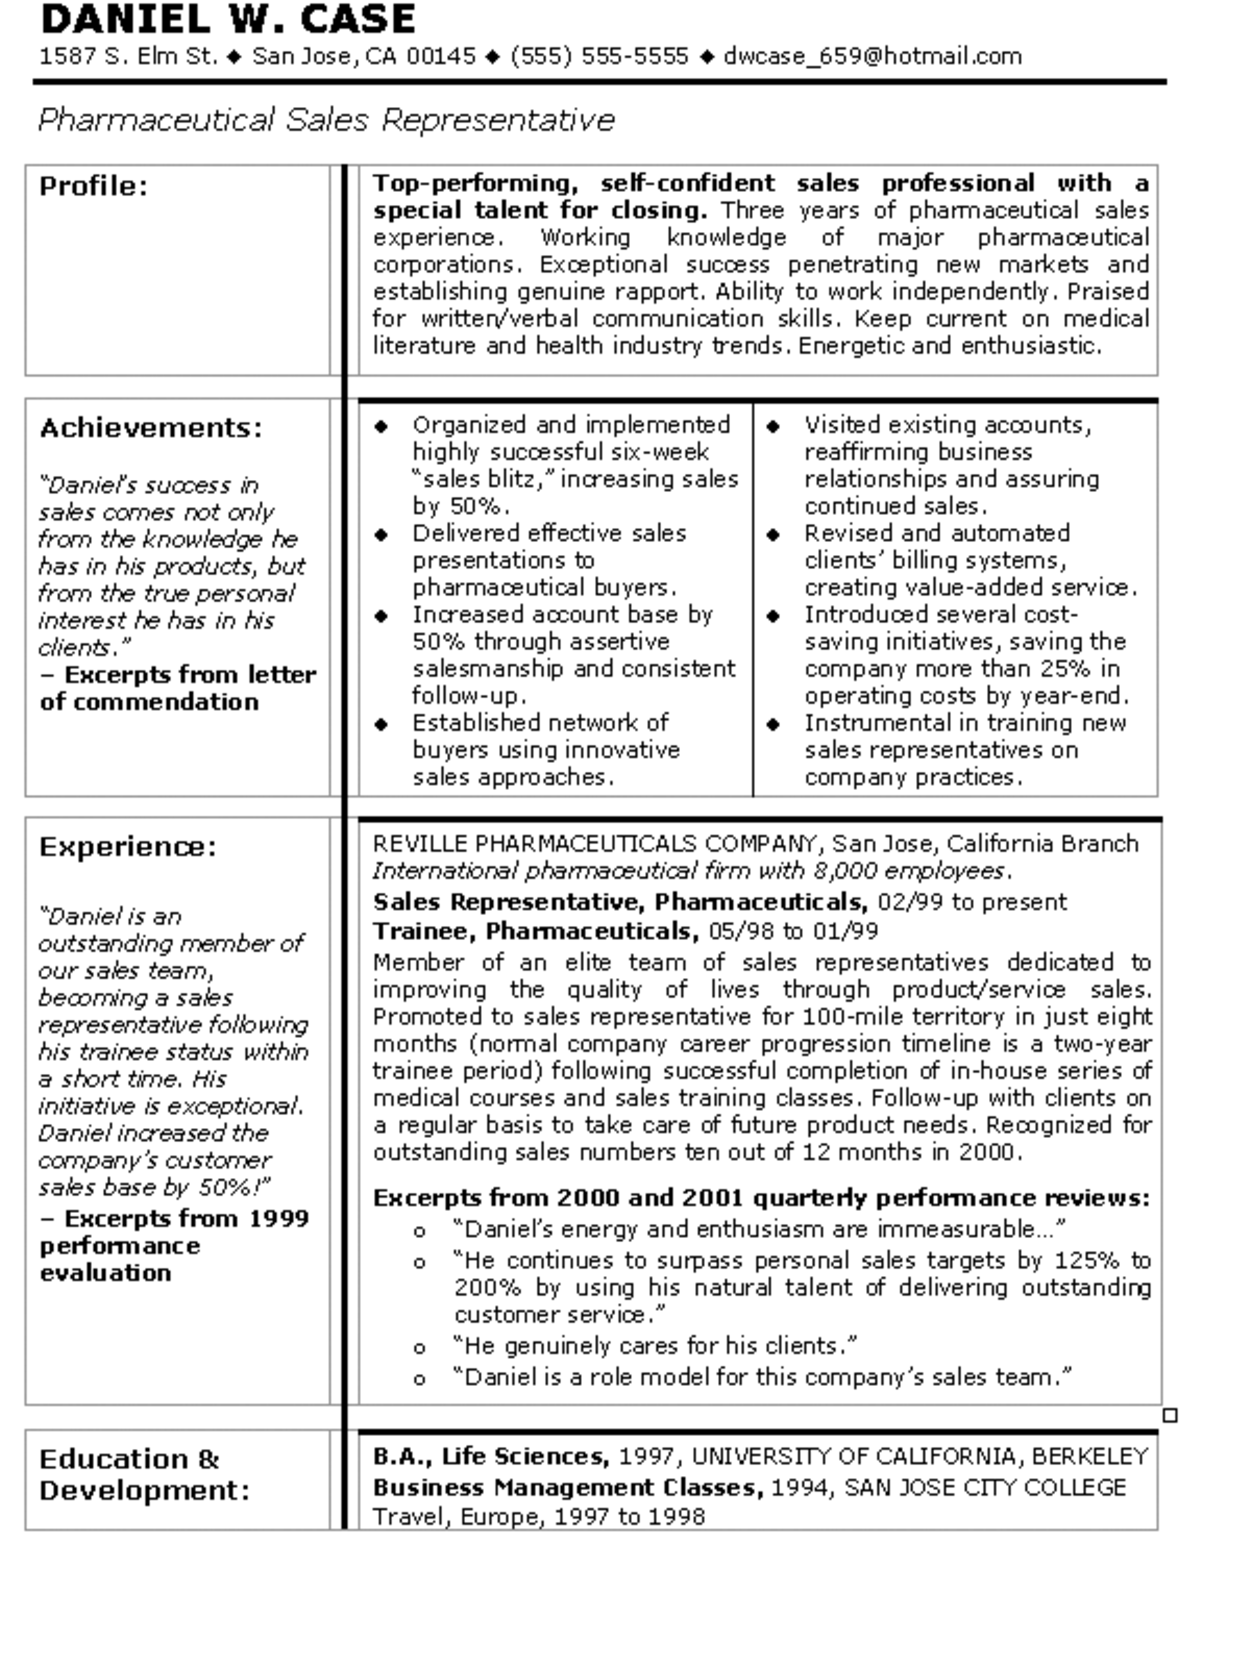 Sample Resume For Pharmaceutical Sales Manager Pharmaceutical Sales Sales Resume Examples Pharmaceutical Sales Resume